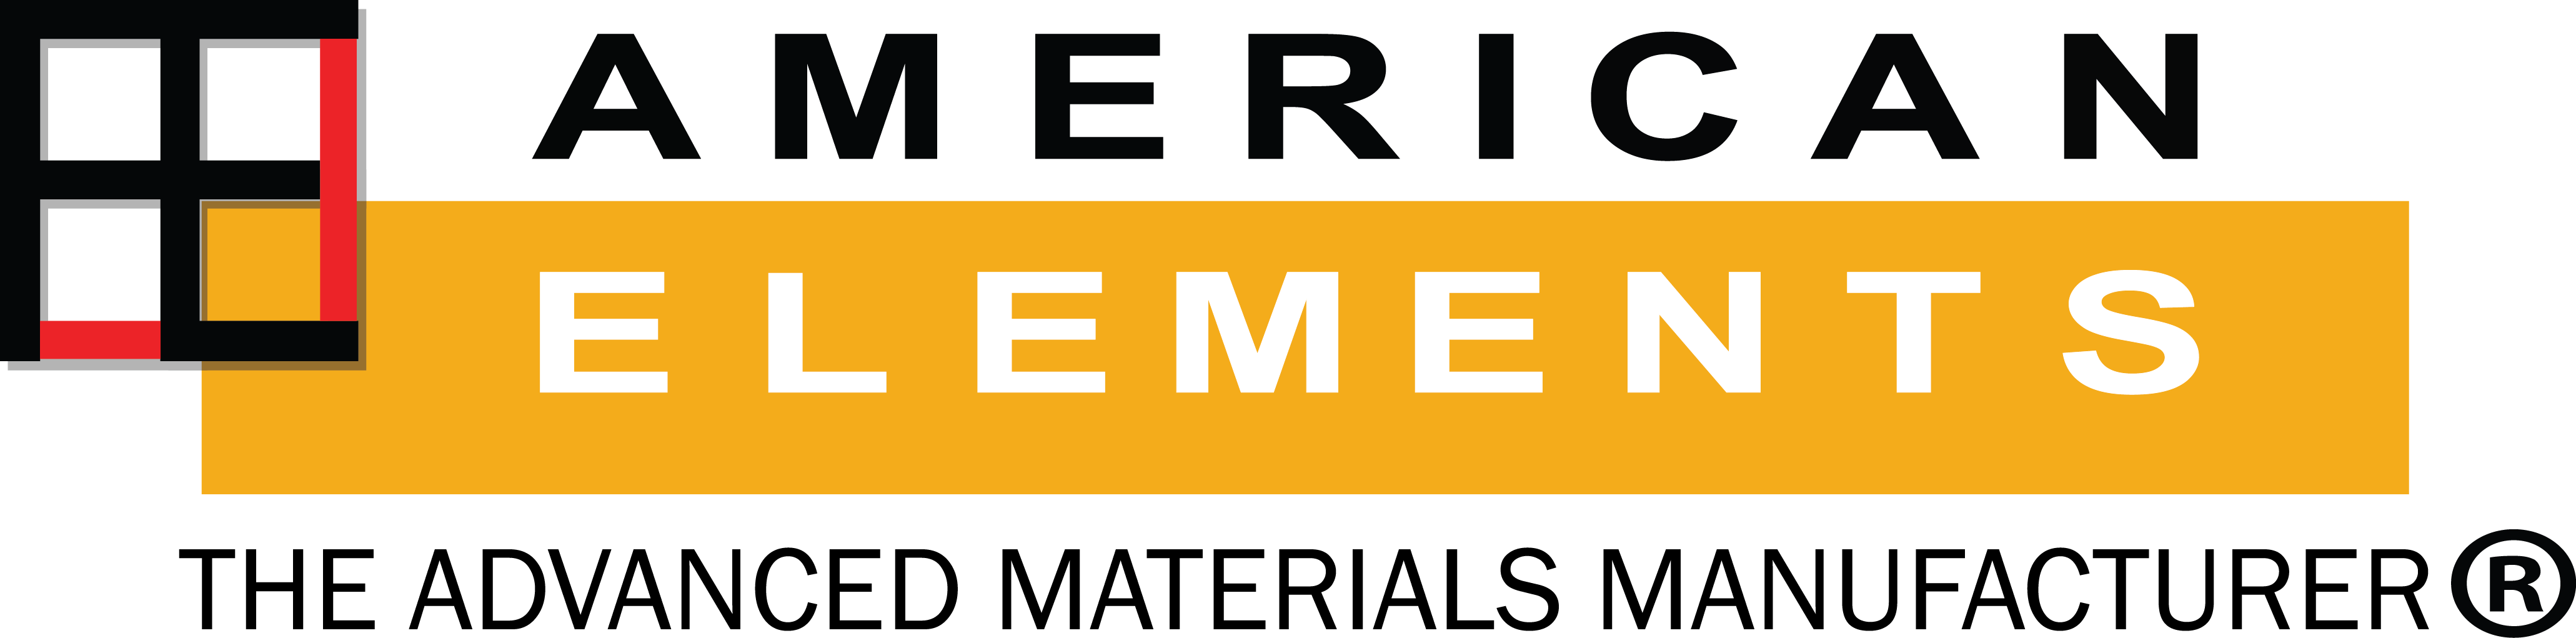 American Elements, global manufacturer of high purity metal & ceramic nanopowders, precursors, semiconductor nanocrystals, & ceramic packaging materials for semiconductor devices & integrated circuits